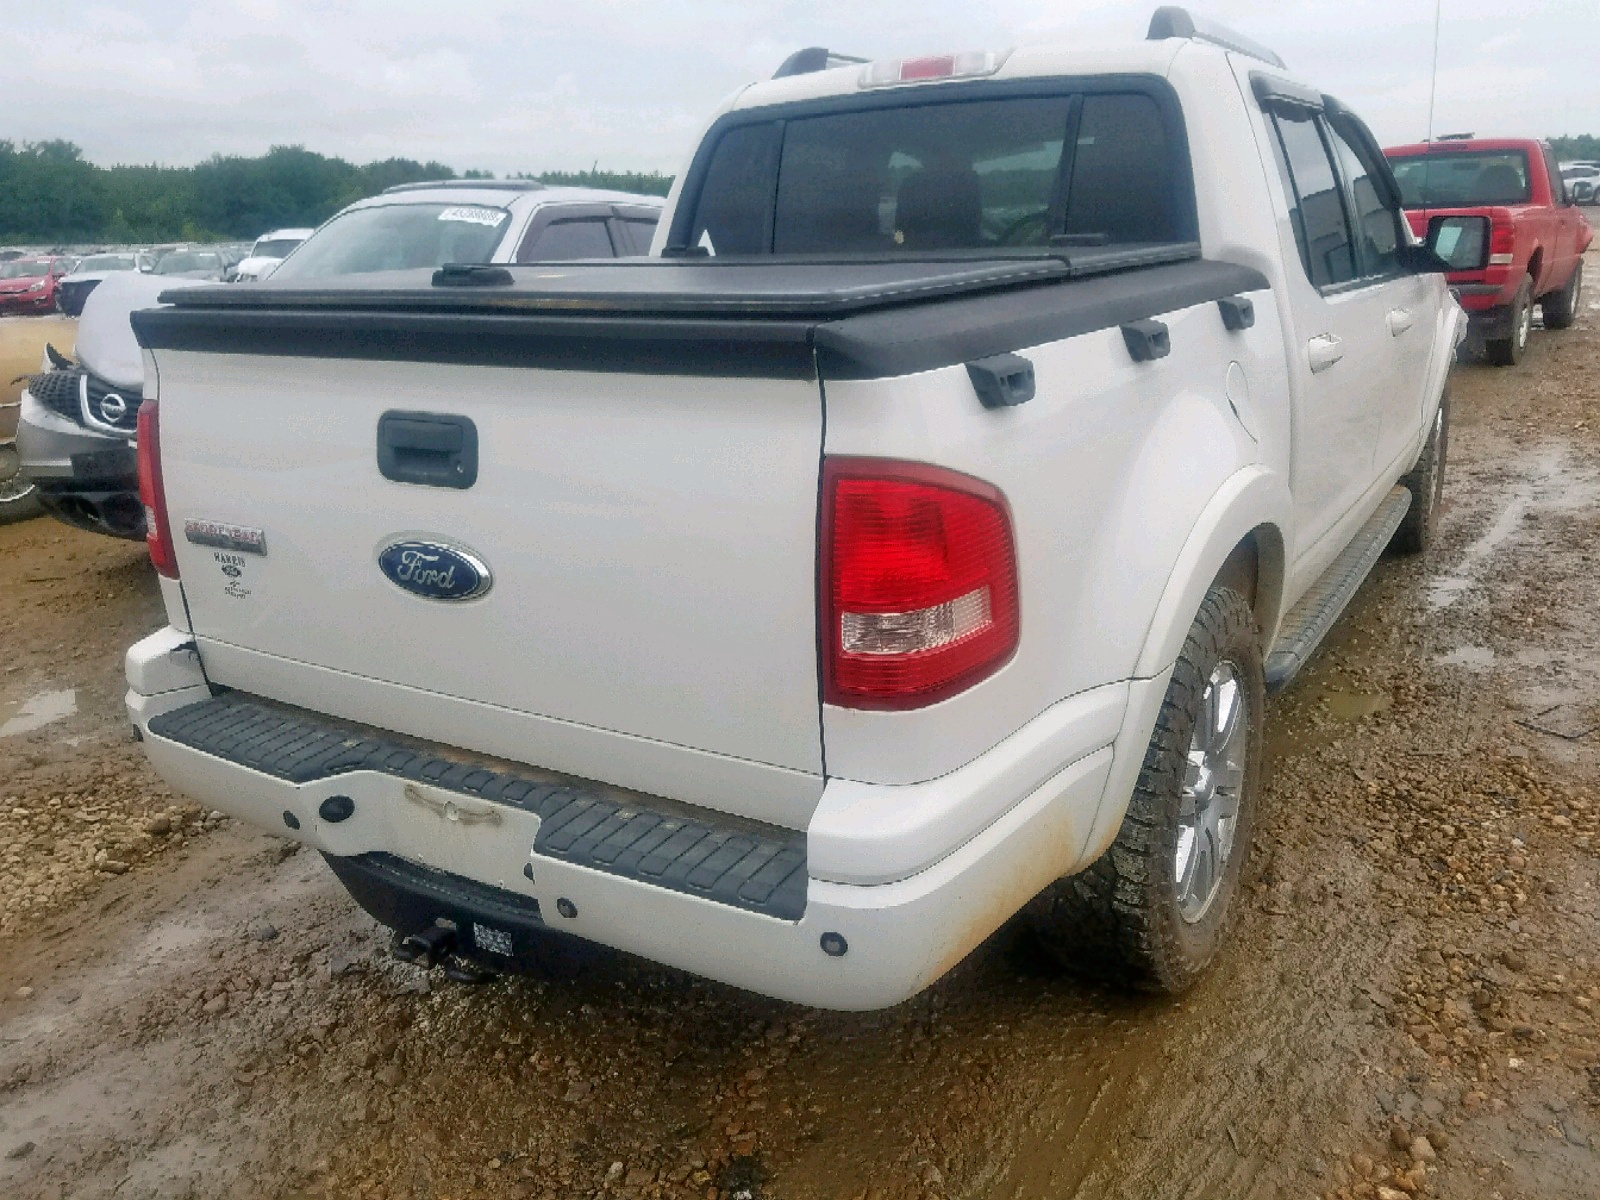 1FMEU33E18UA99057 - 2008 Ford Explorer S 4.0L rear view